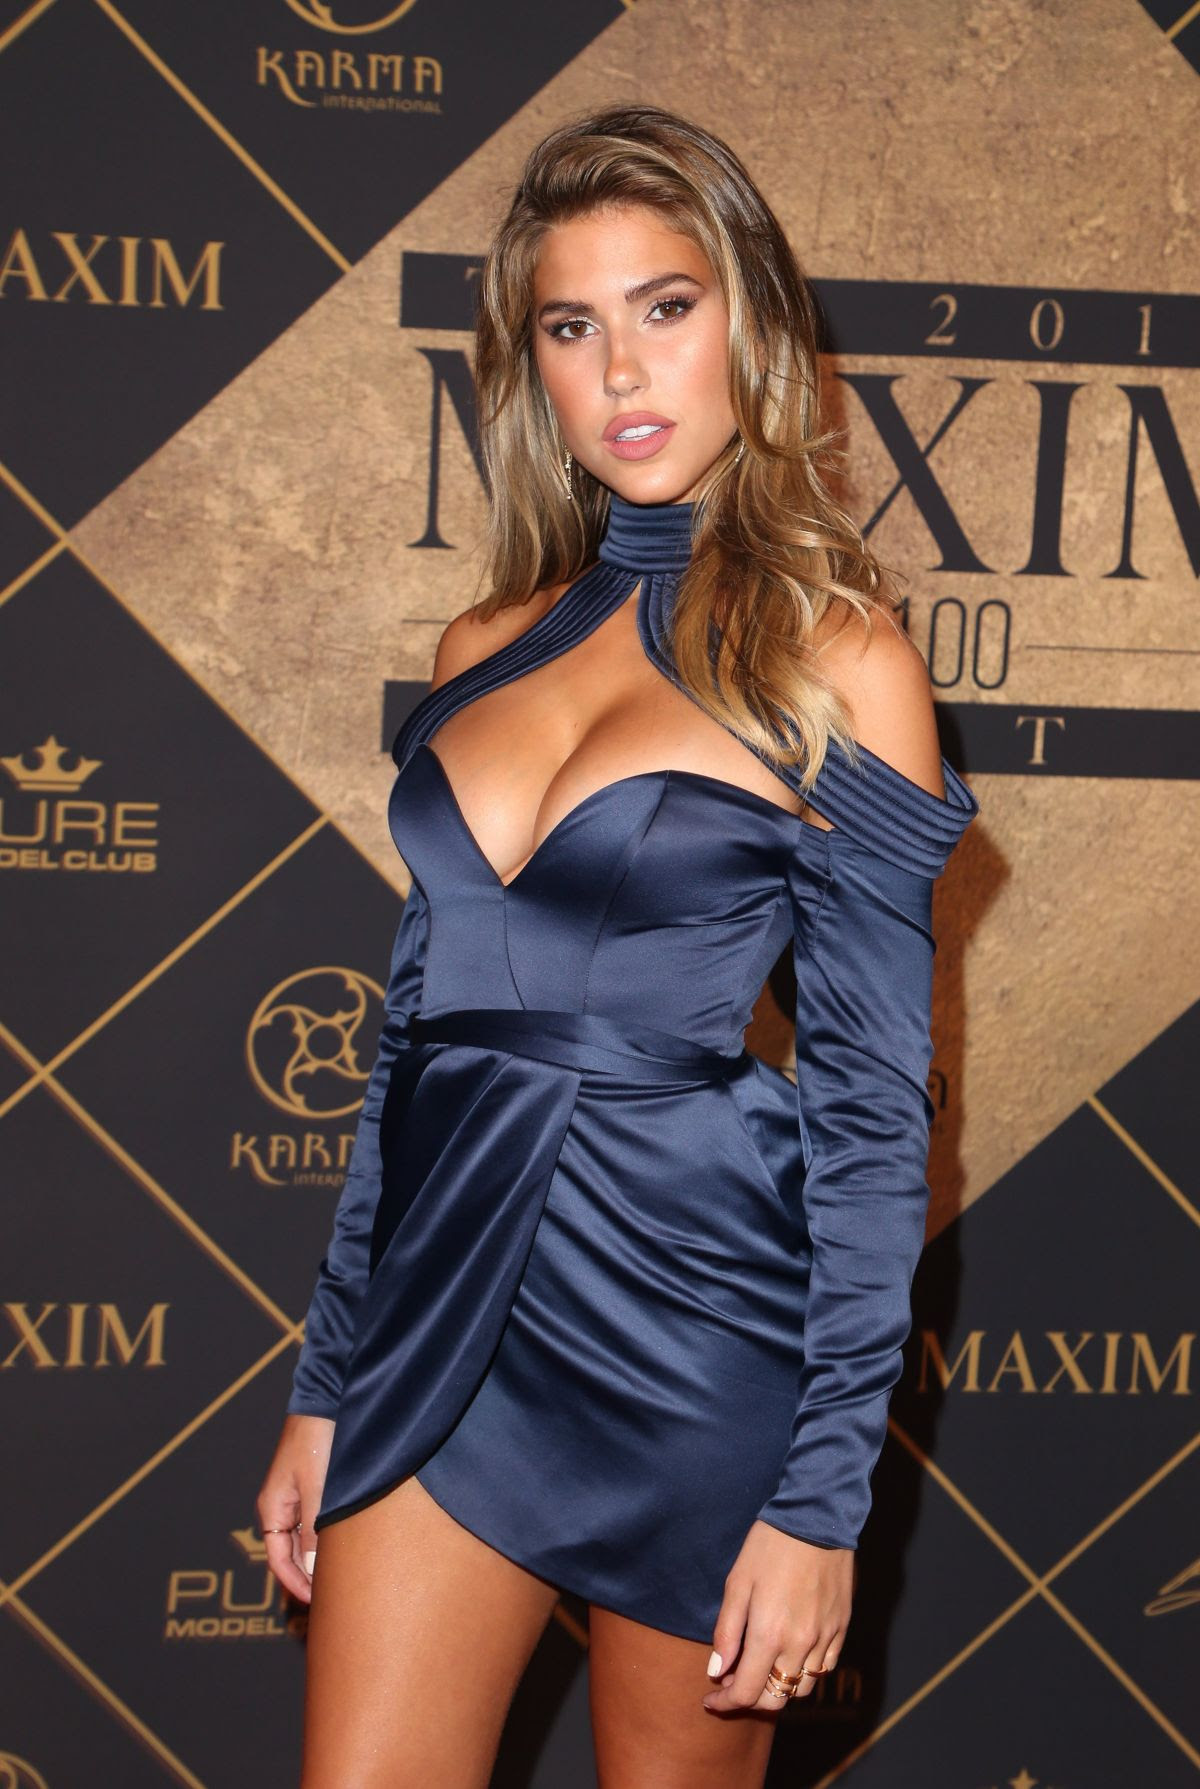 KARA DEL TORO at Maxim Hot 100 Party in Hollywood 06/24/2017